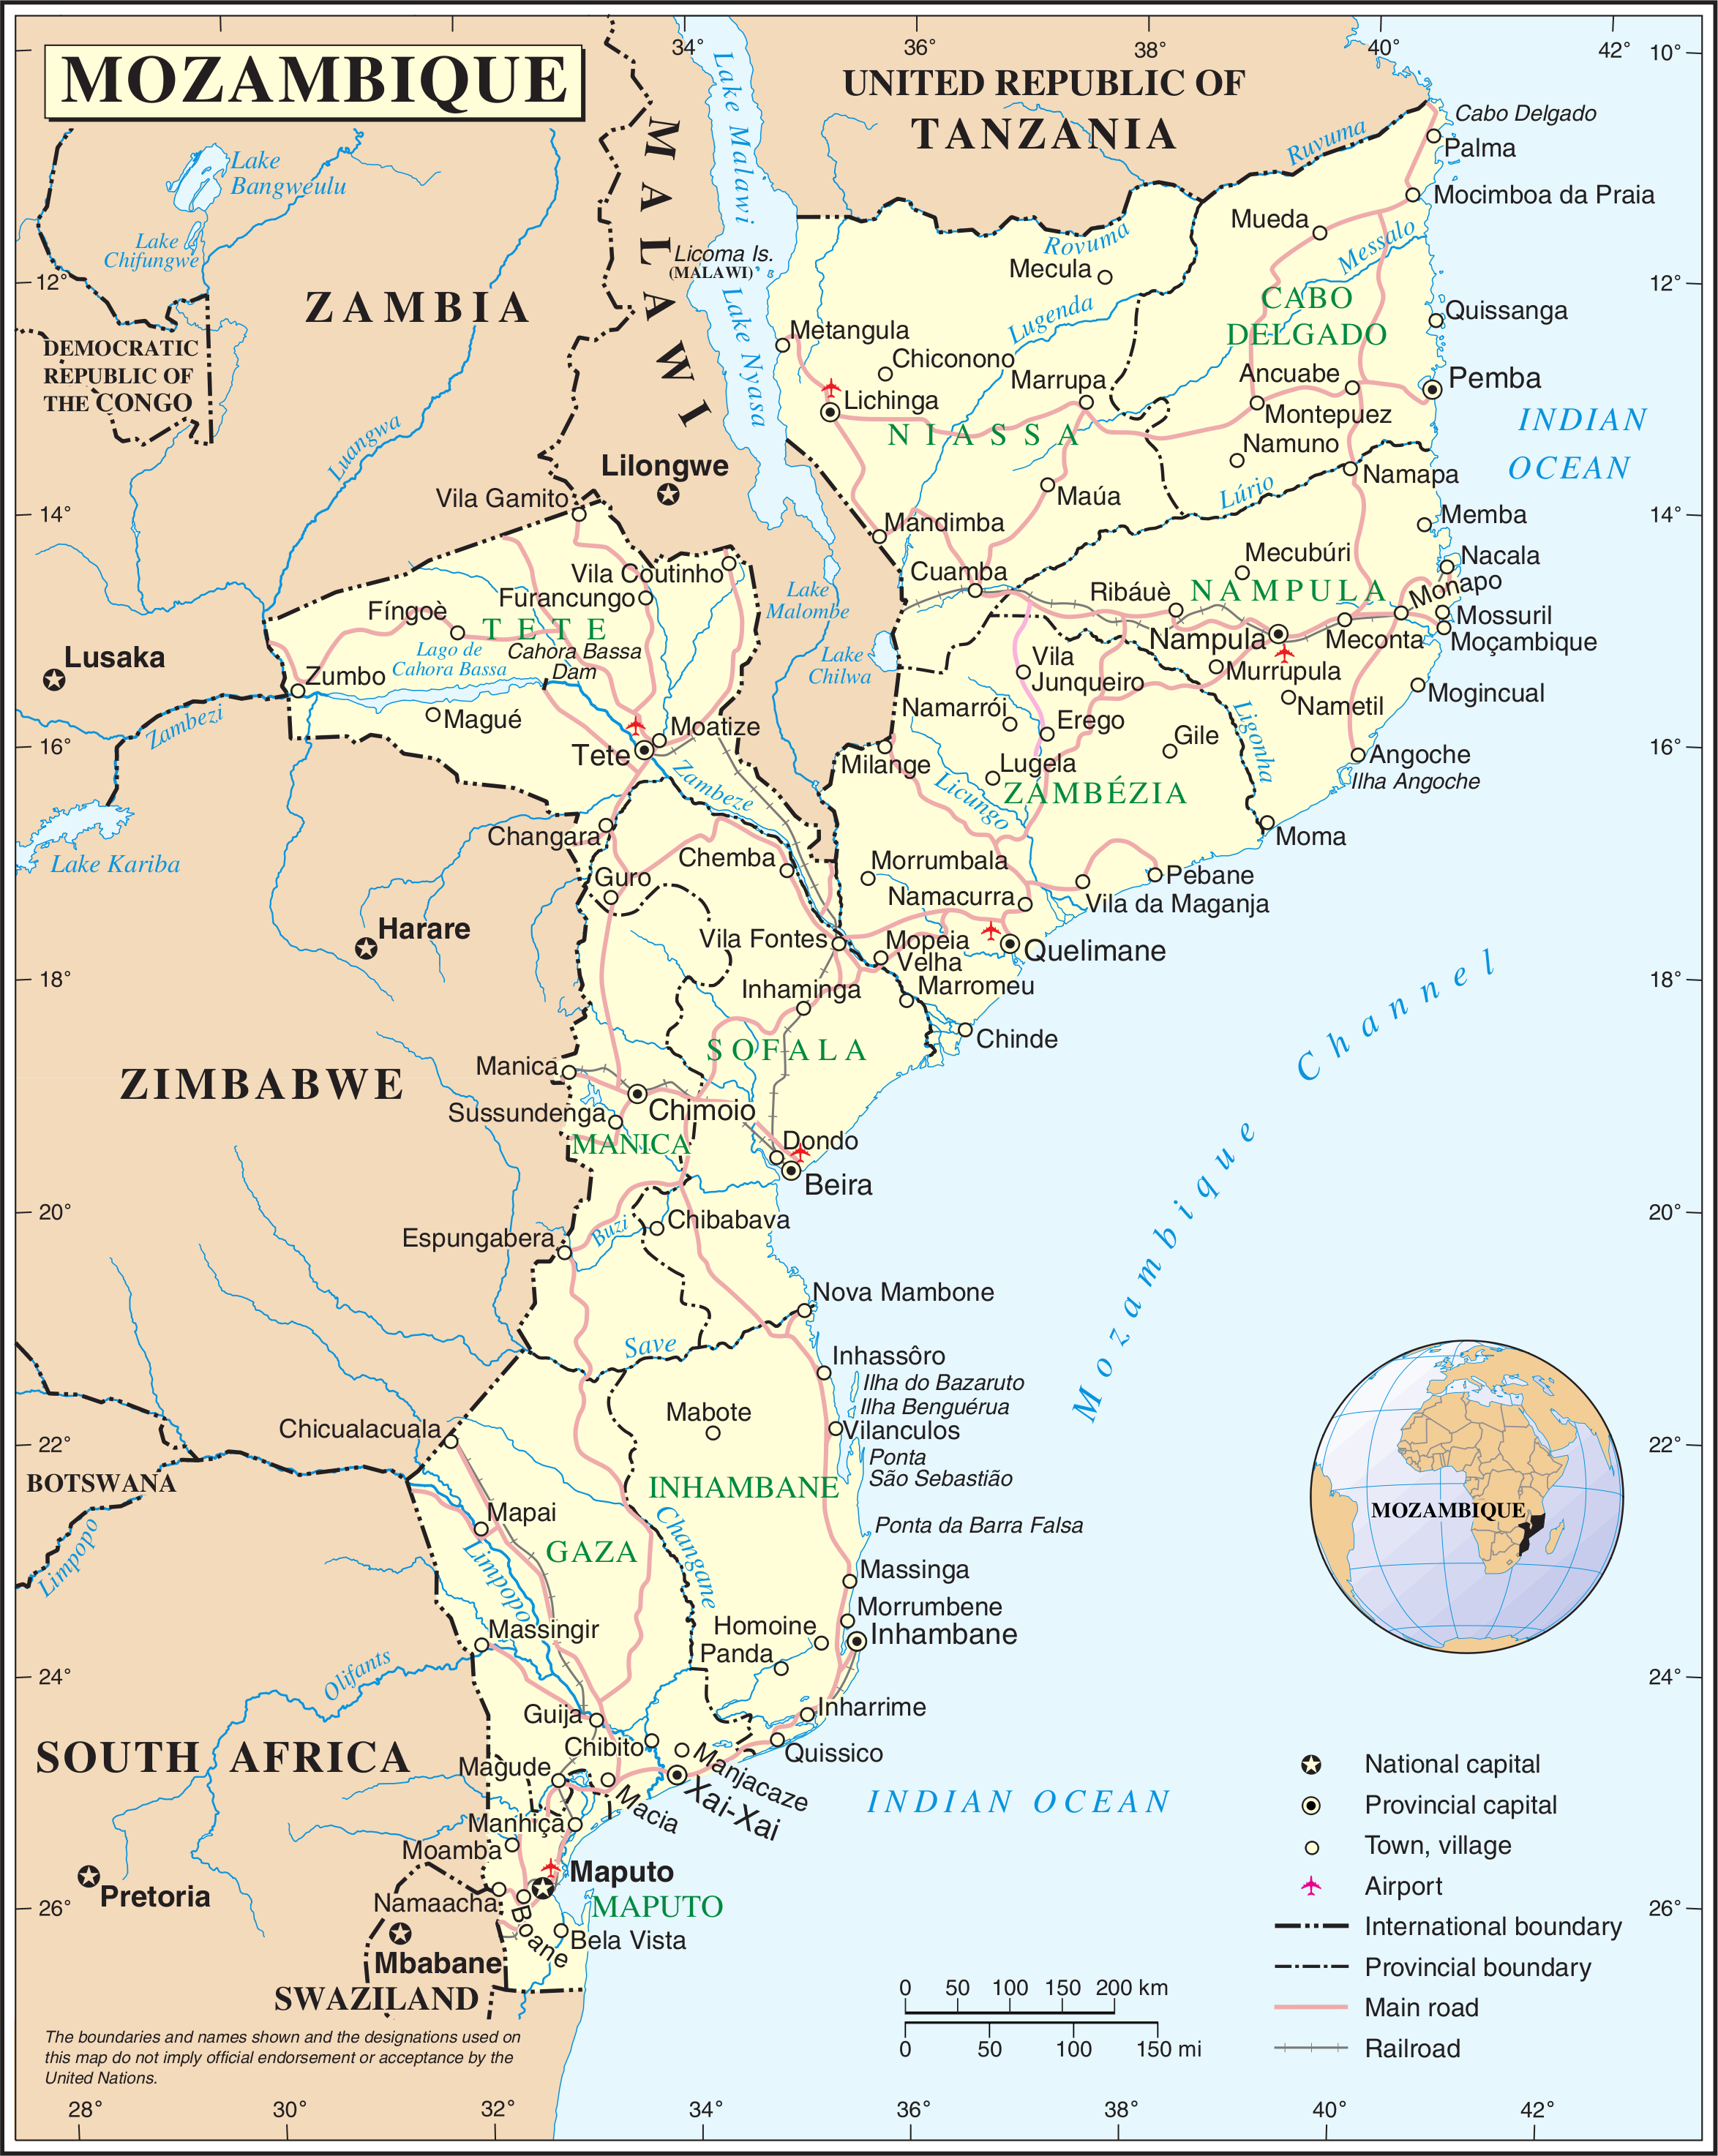 Outline of Mozambique